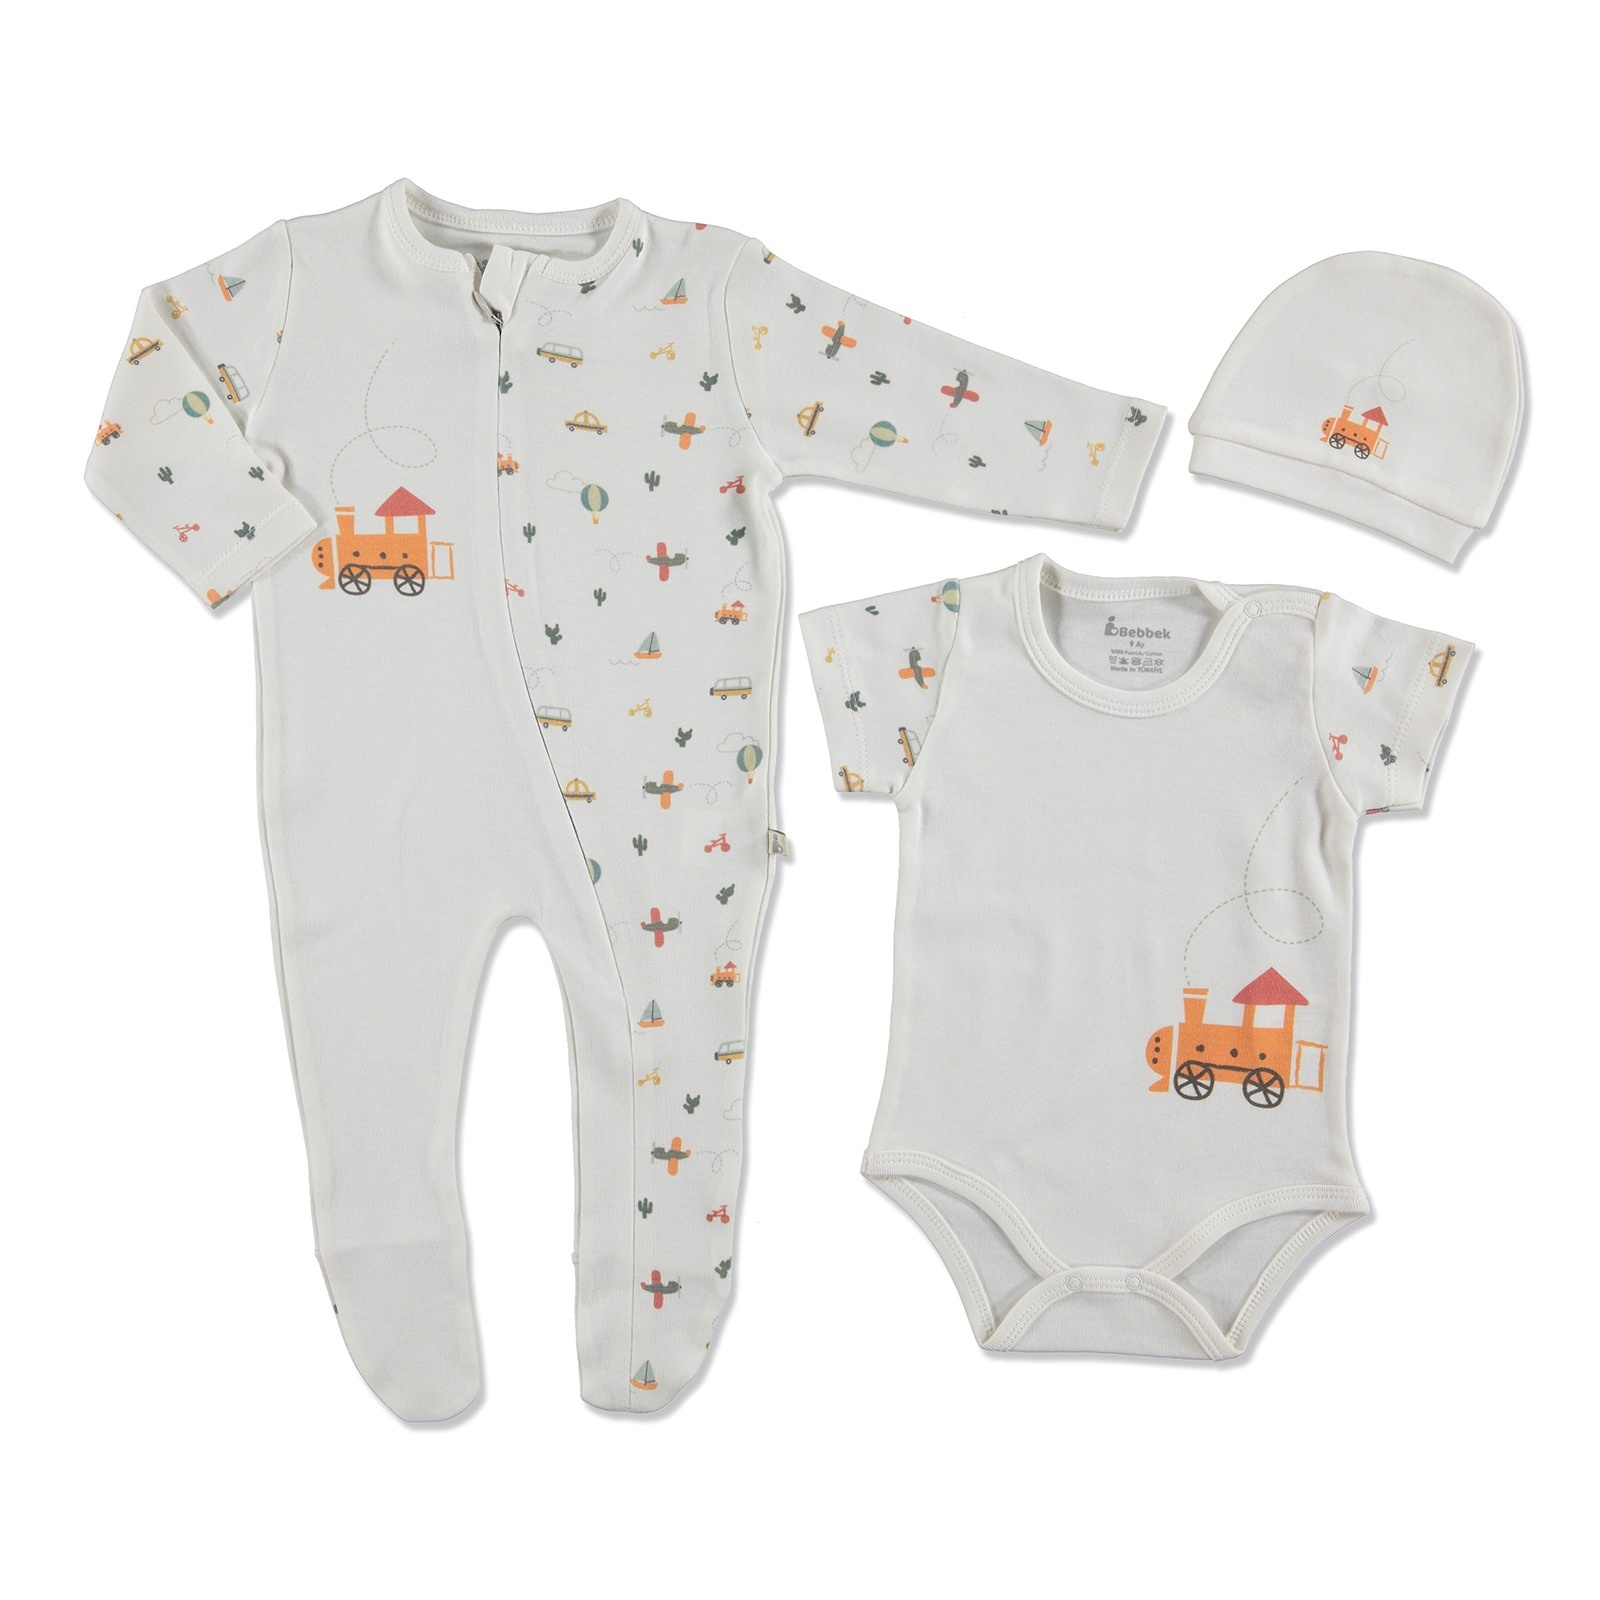 Ebebek Bebbek Summer Baby Boy Train Romper Bodysuit Hat 3 Pcs Set